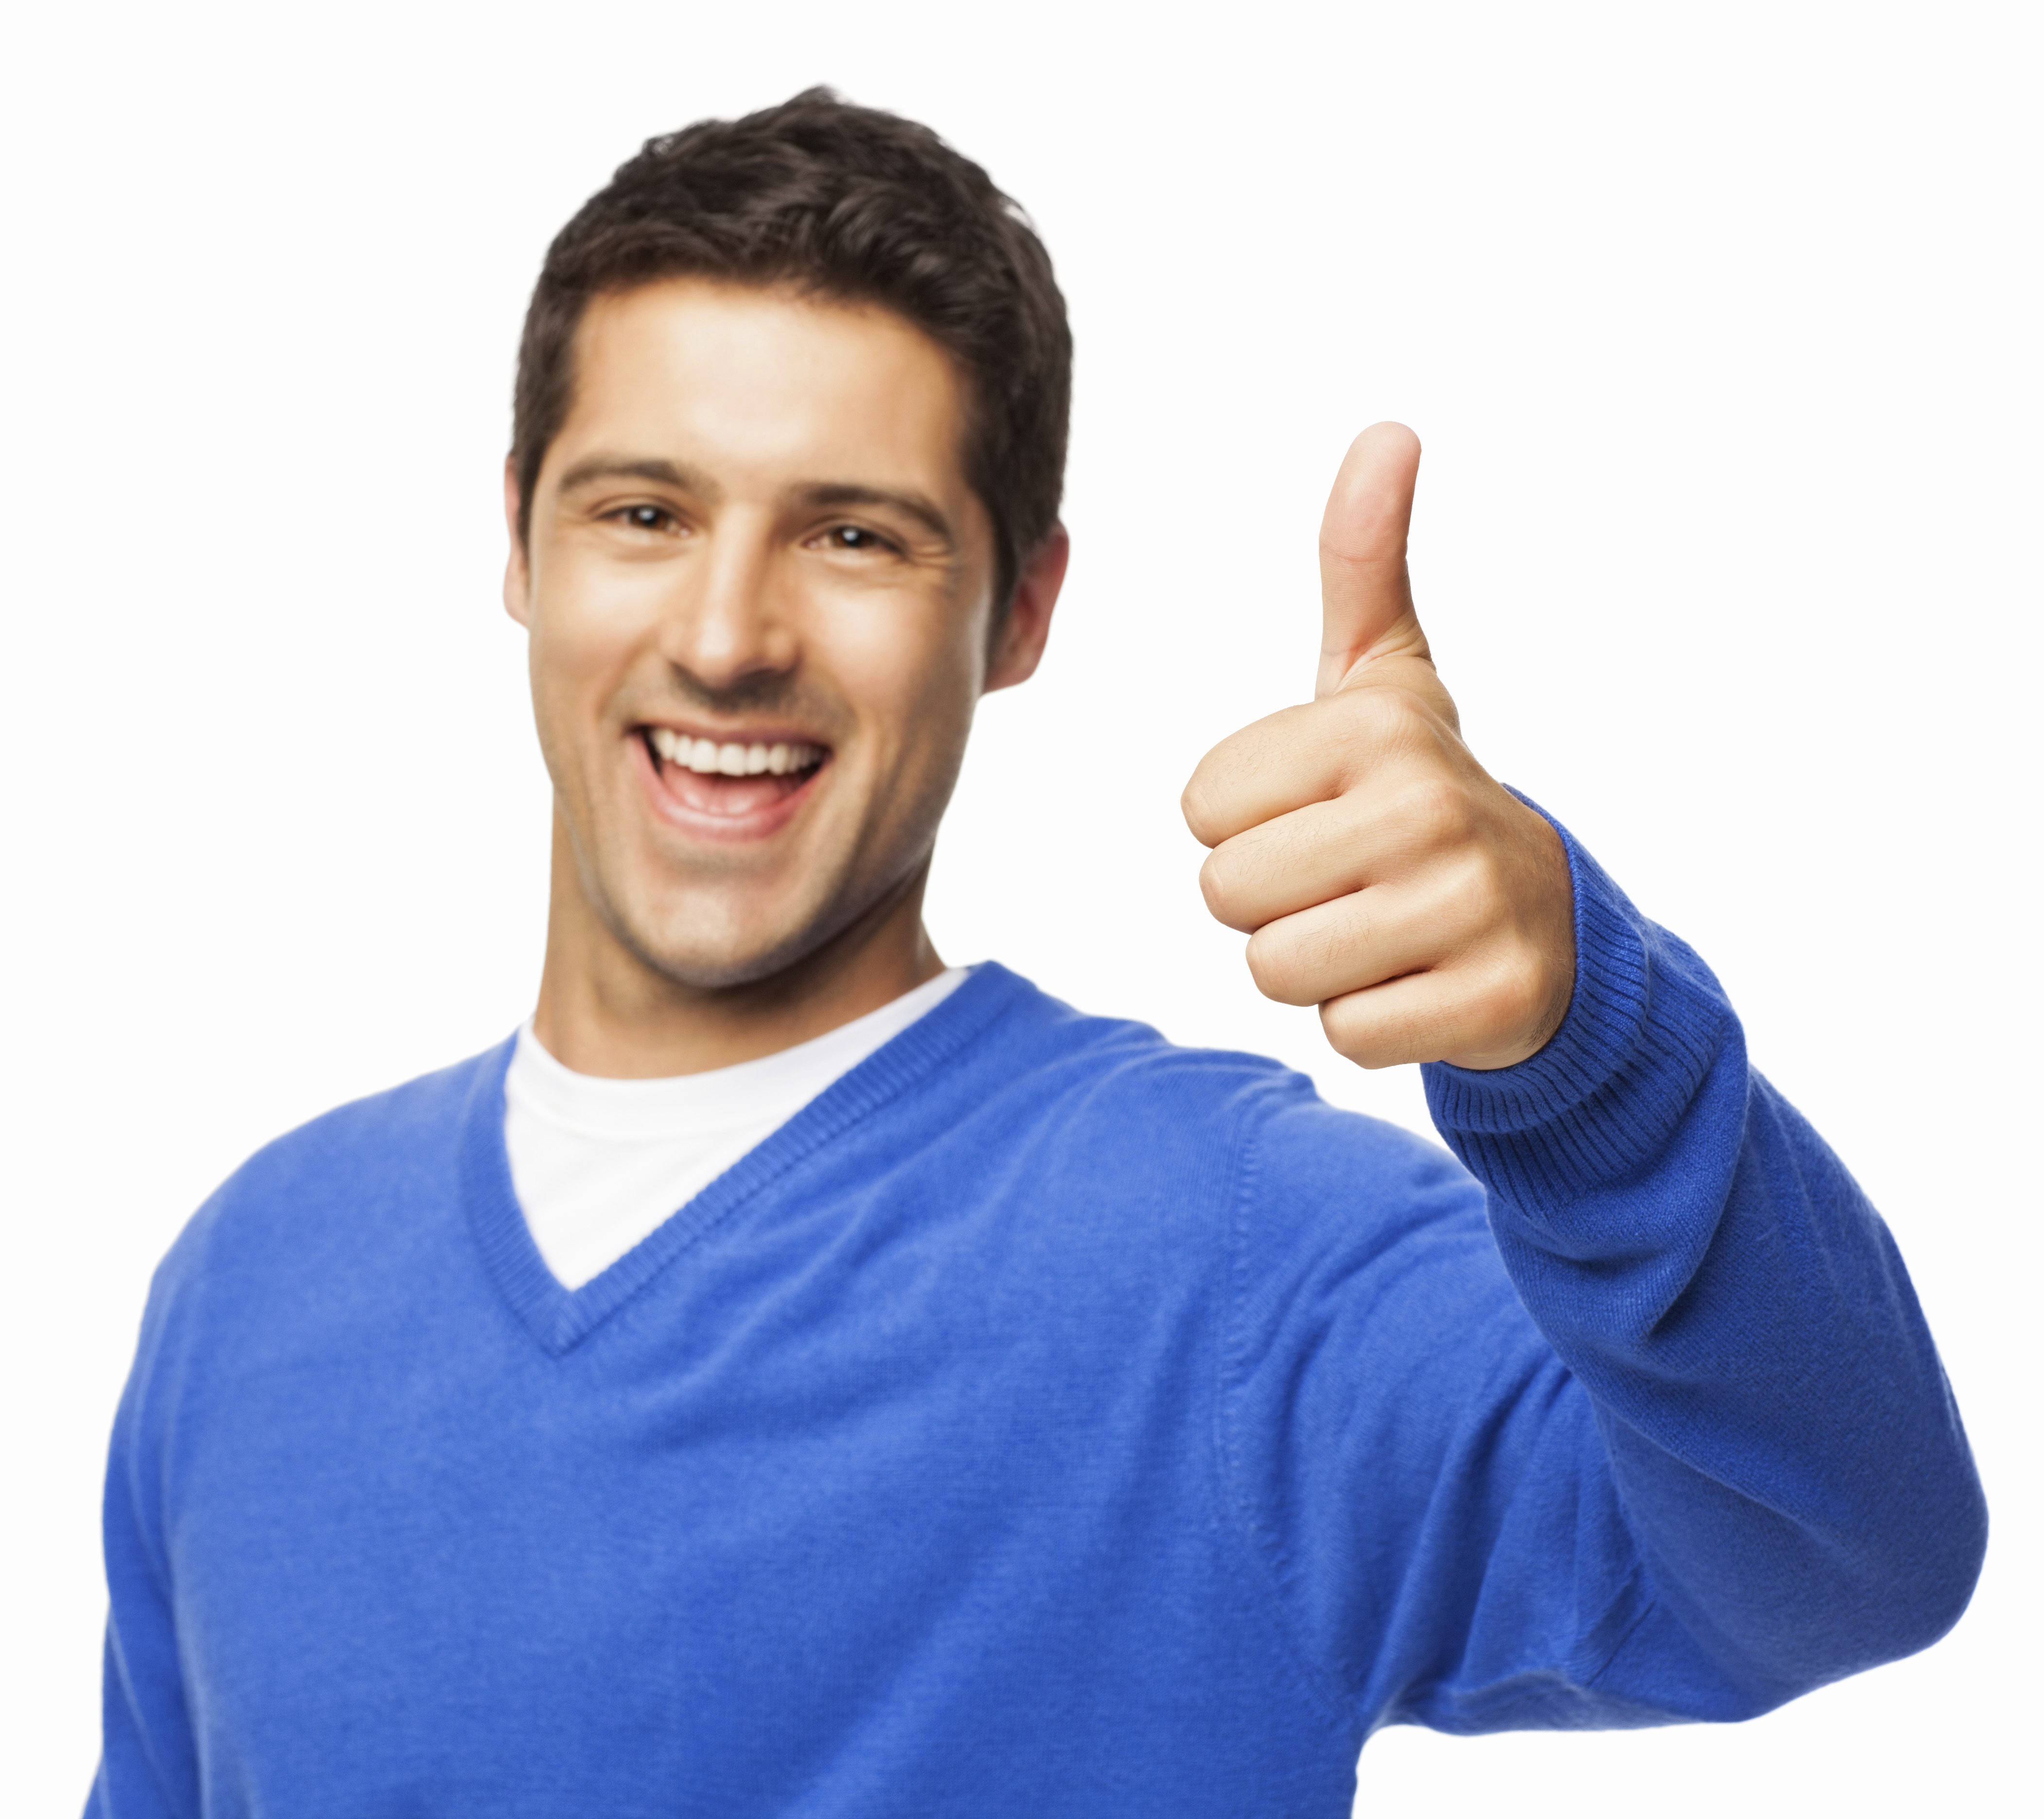 Handsome Young Man Gesturing Thumbs Up - Isolated